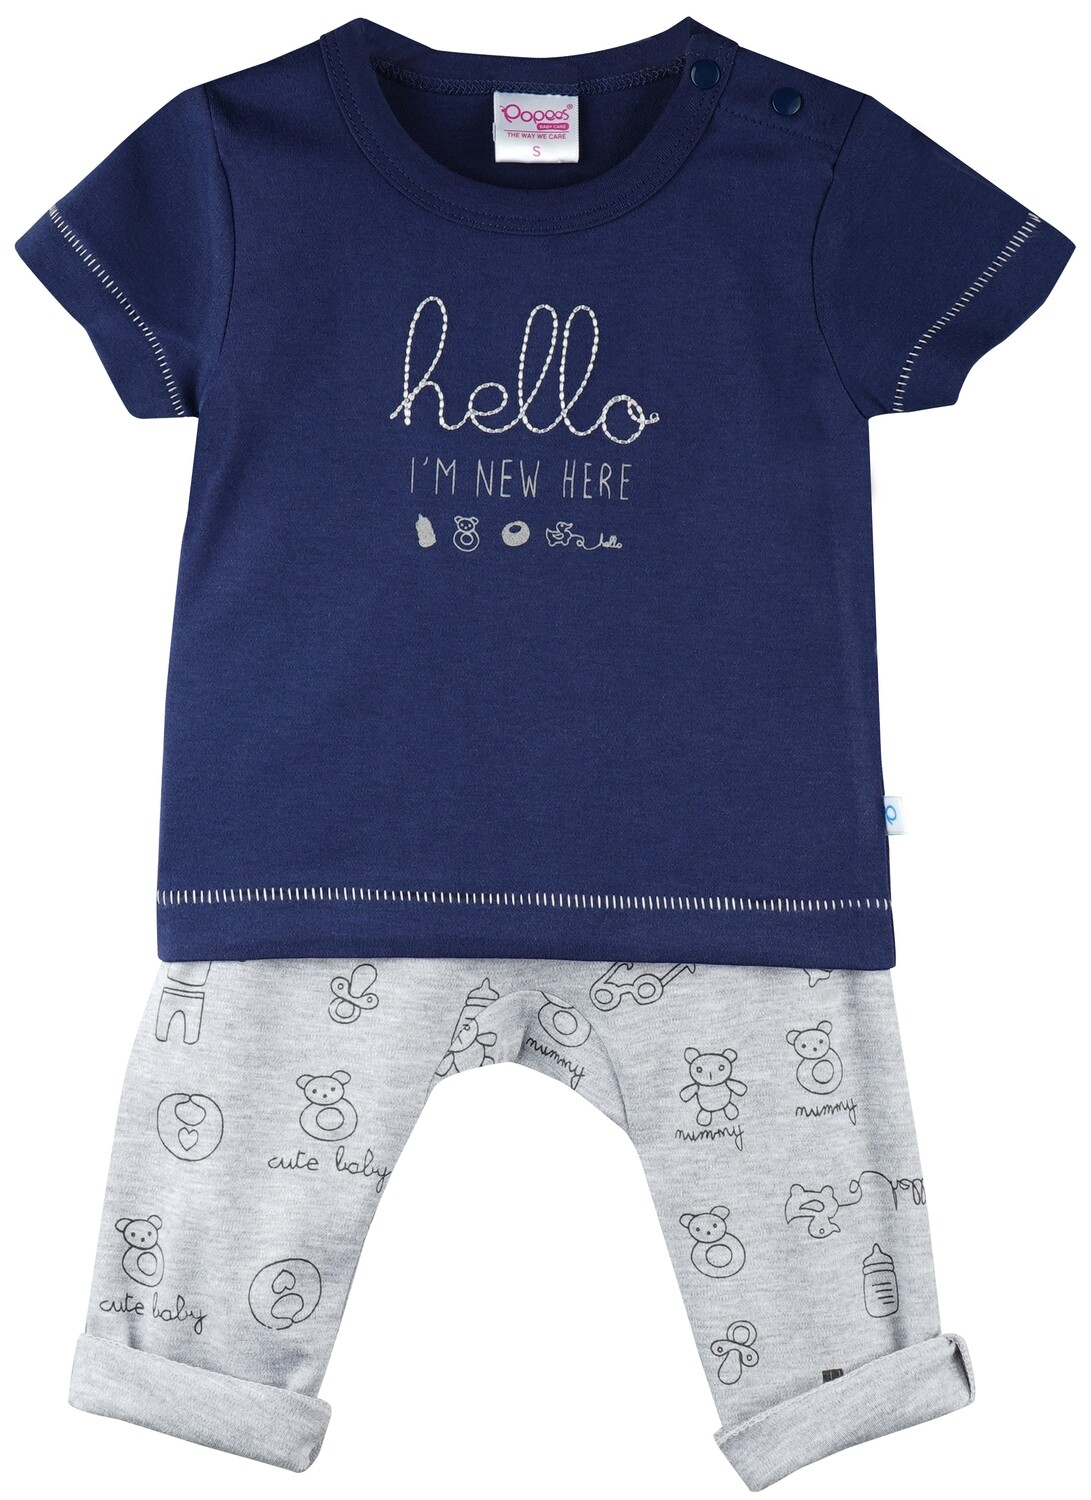 Qubee Navy Blue Half Sleeves Round Neck T-Shirt with Printed Lounge Pant